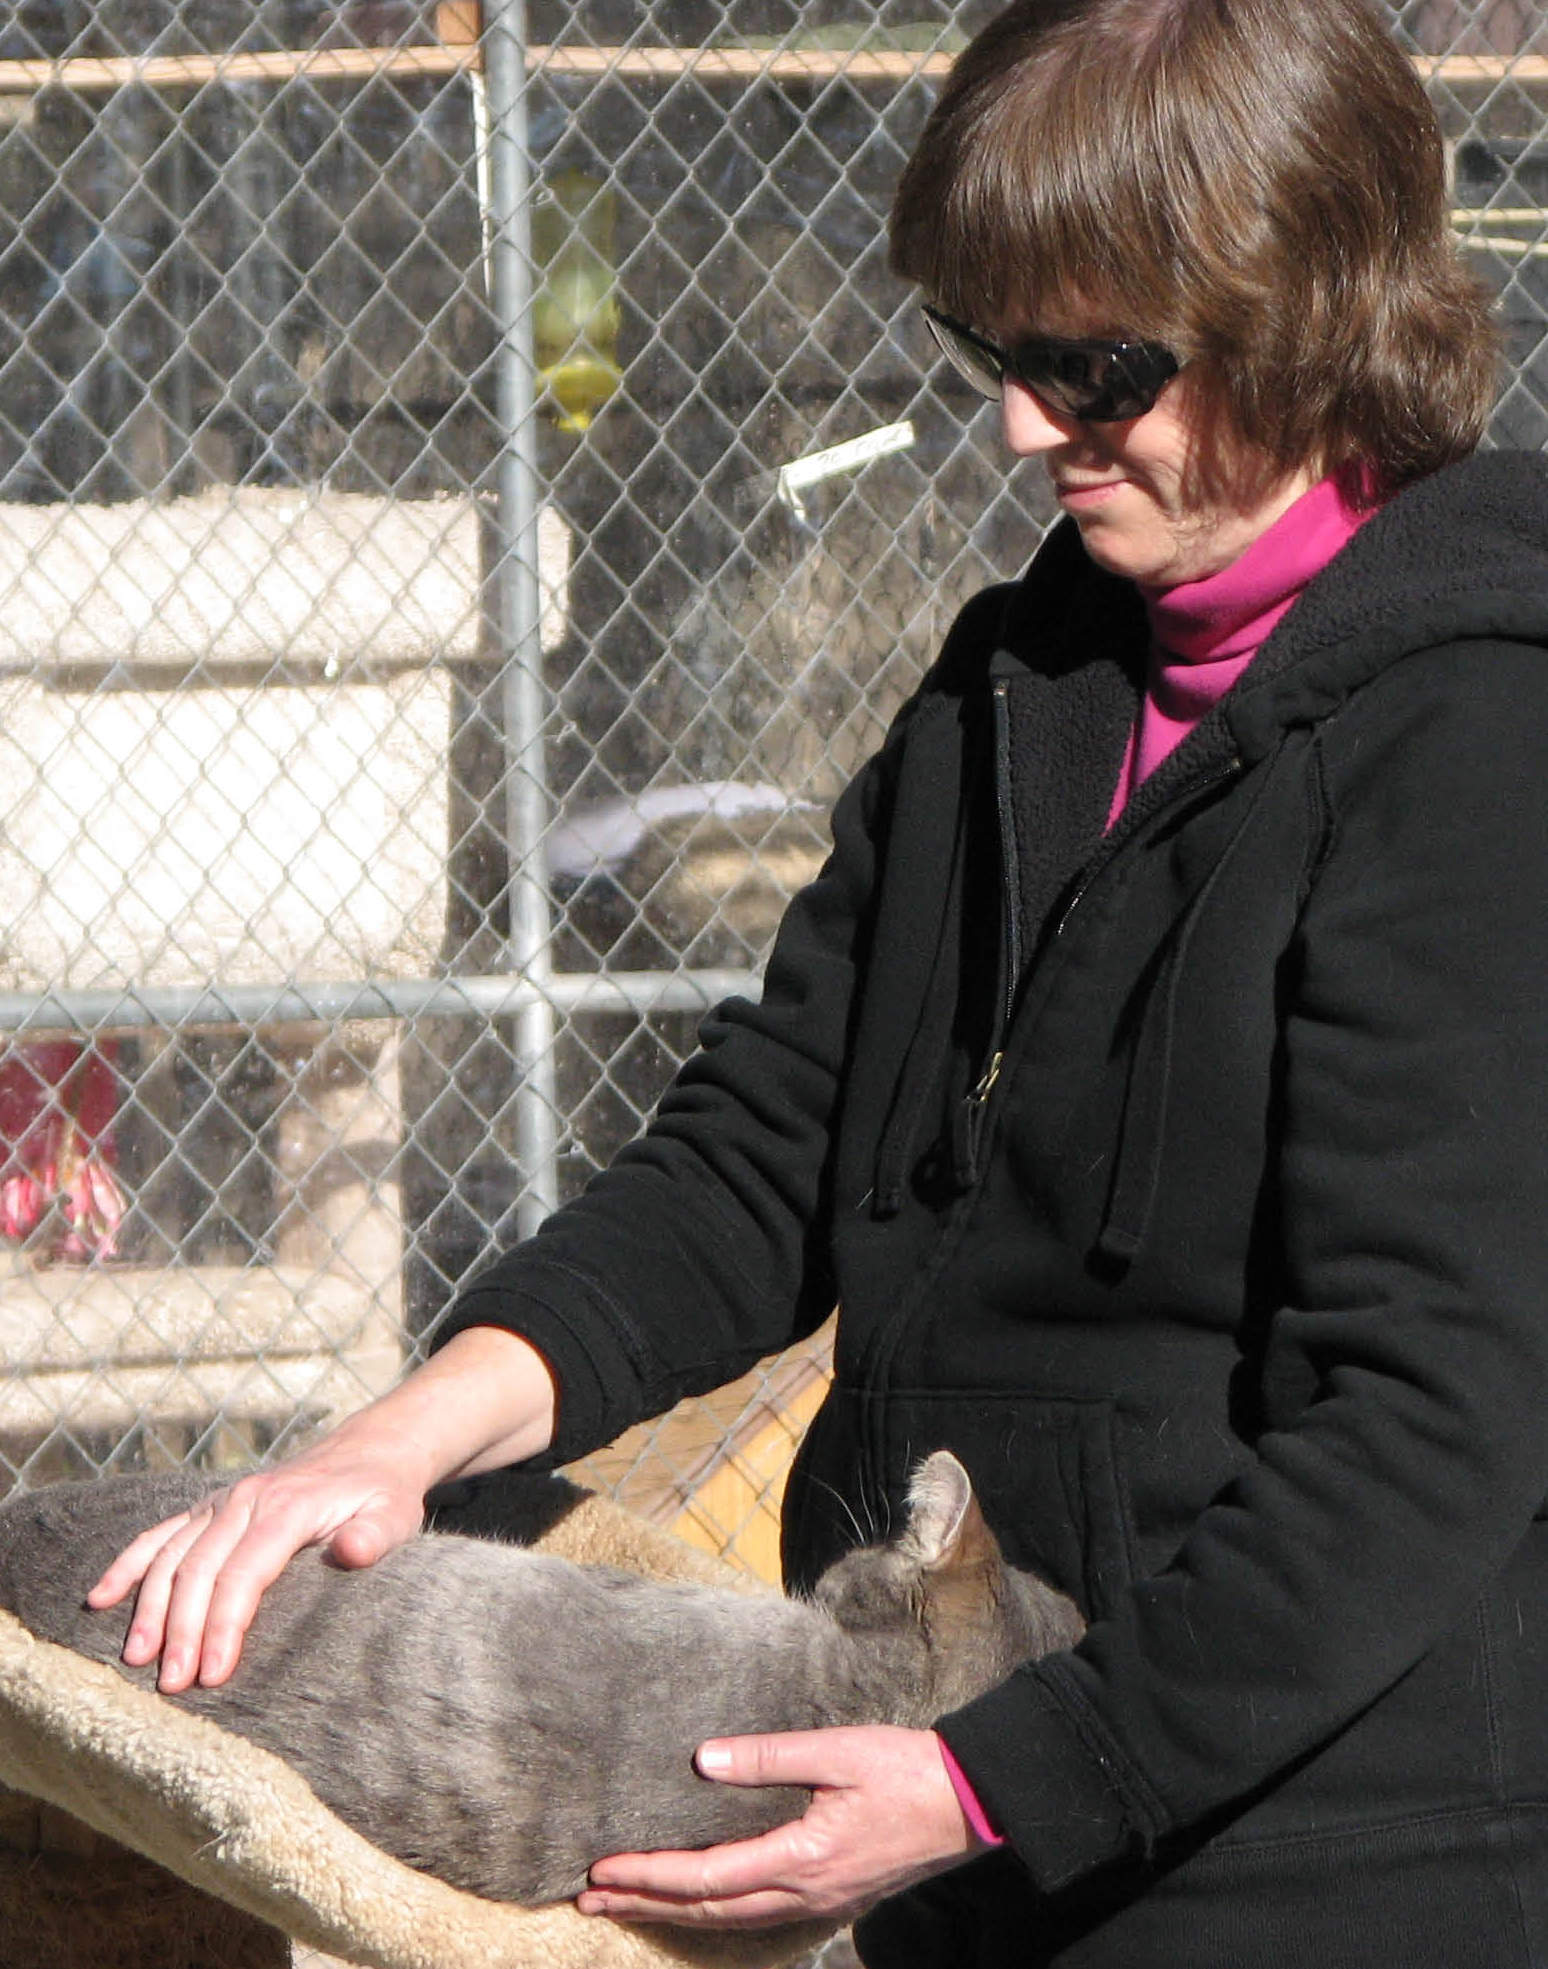 Animal Reiki: Jan Fiore offers Reiki to cat at sanctuary